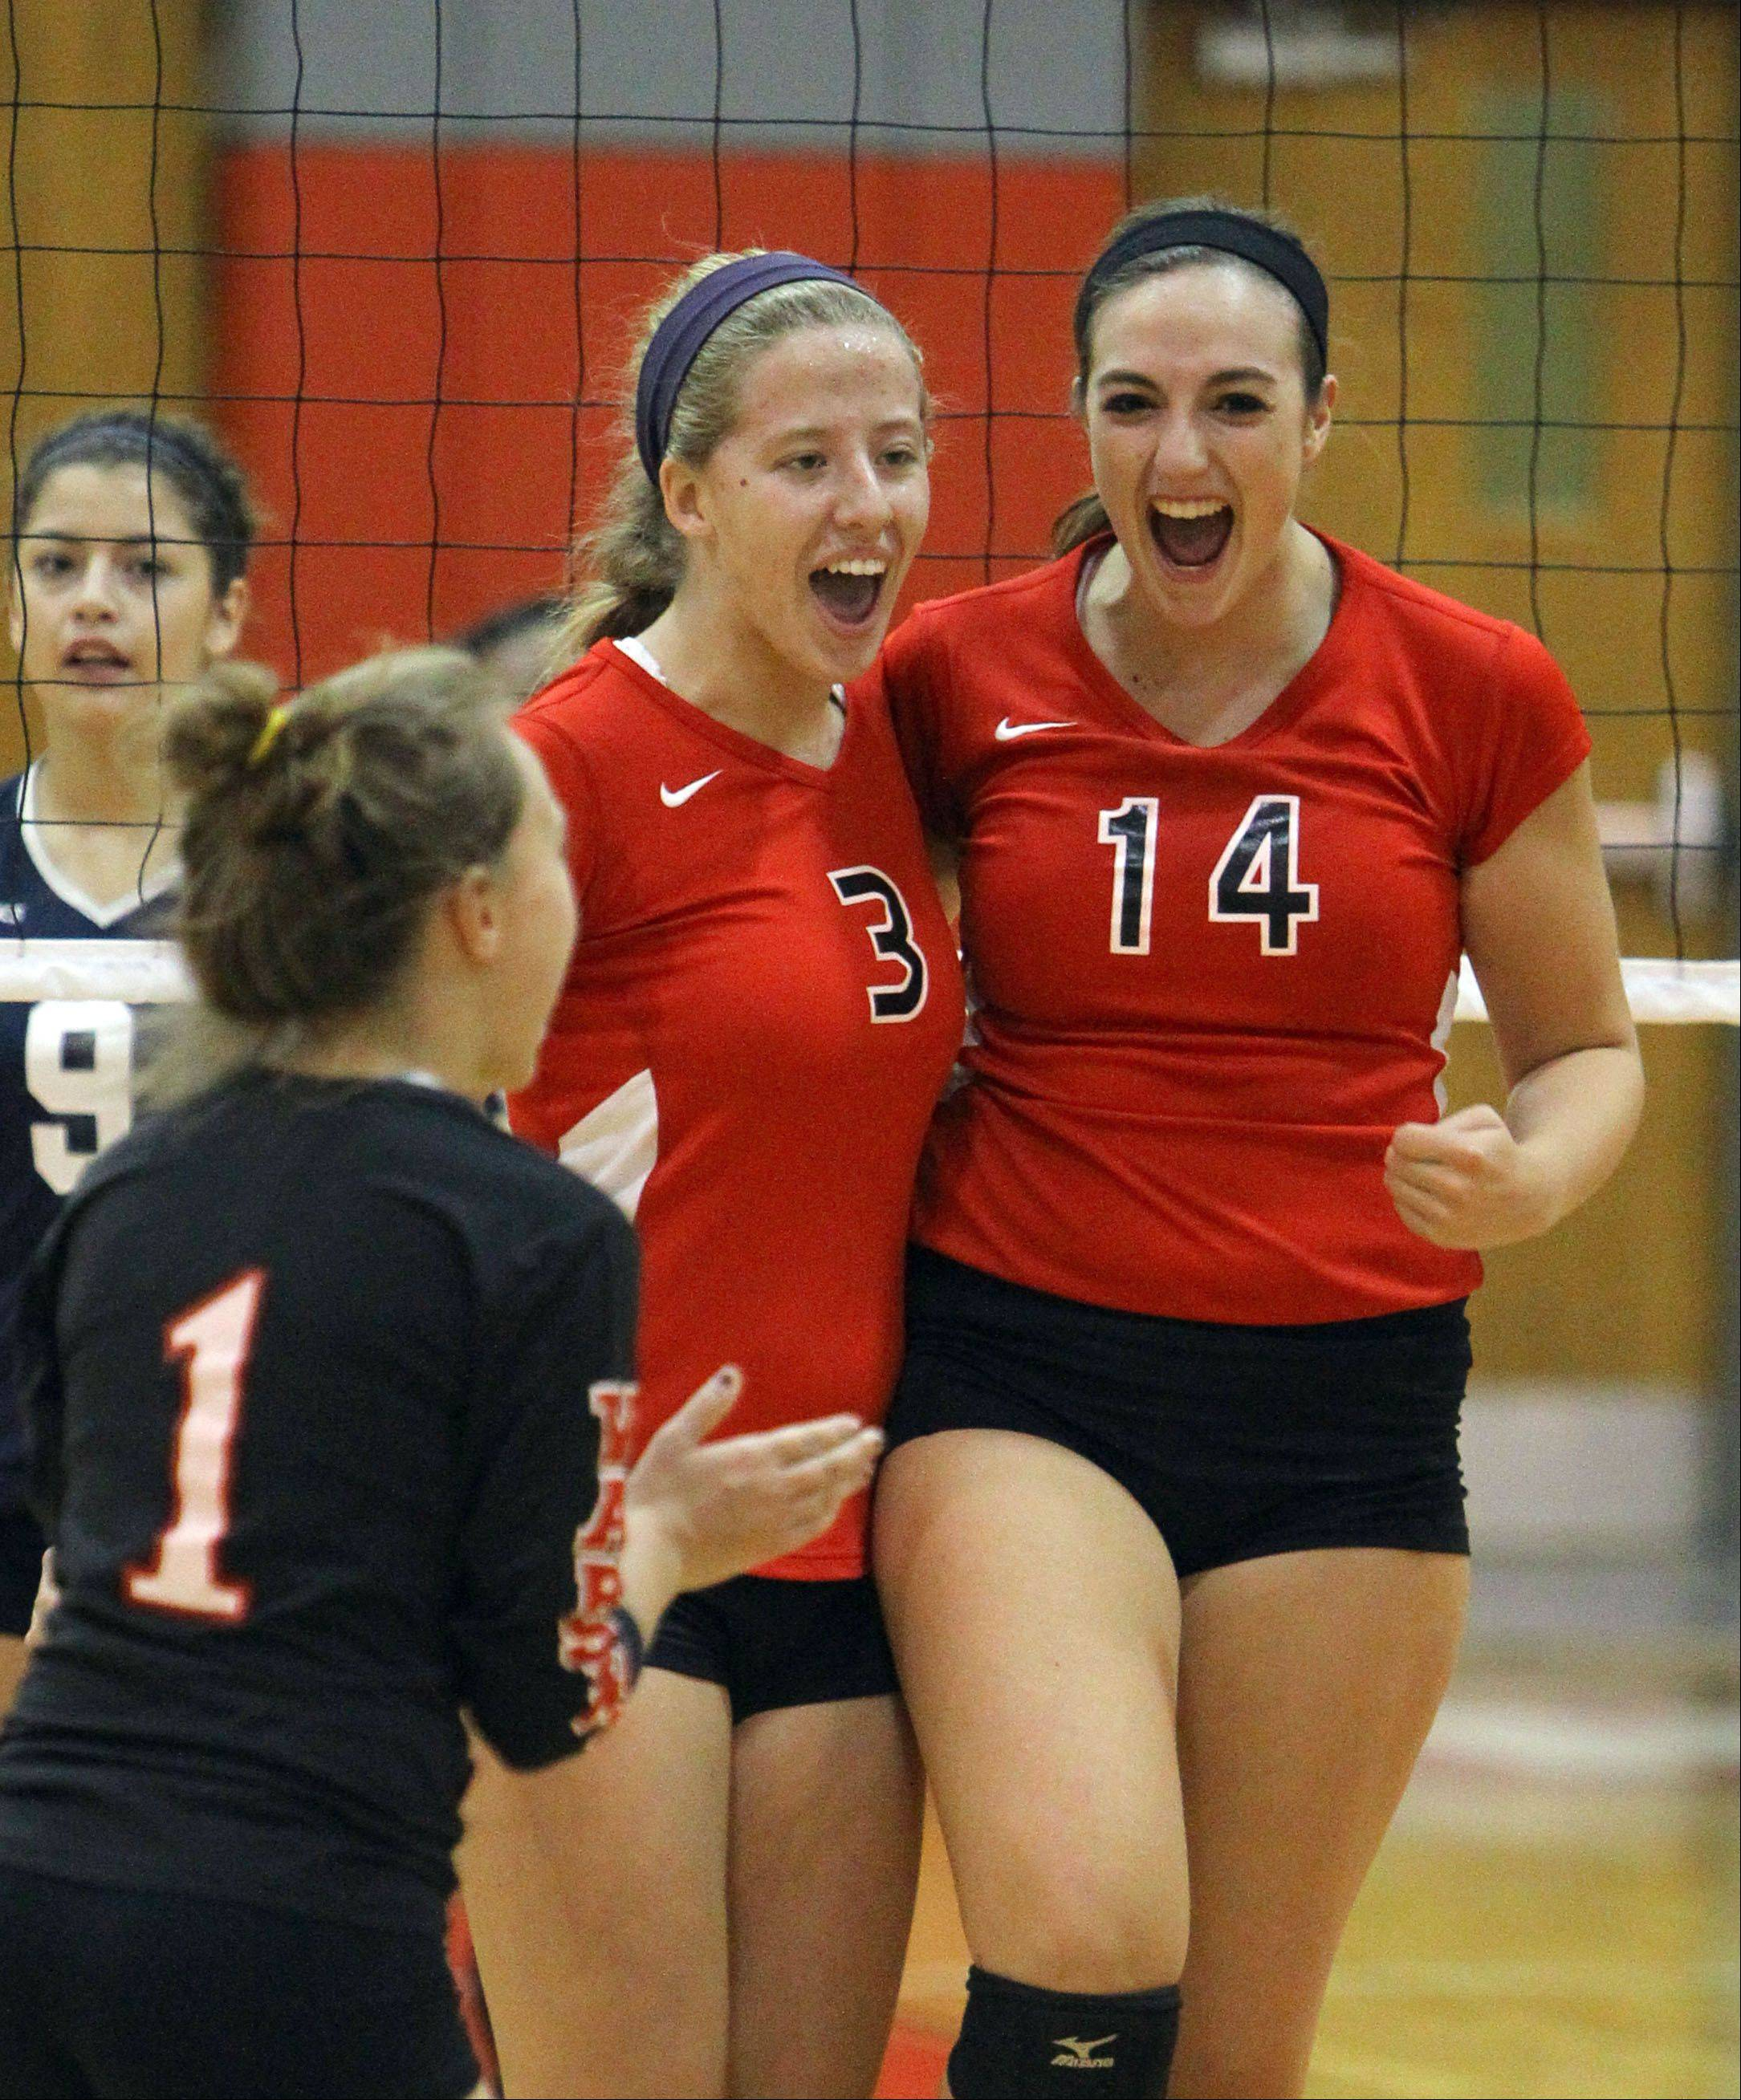 From left, Mundelein's Elizabeth Cameron, Courtney Perreault and Ashley Dolin celebrate after winning a point against Round Lake at Mundelein on Monday.